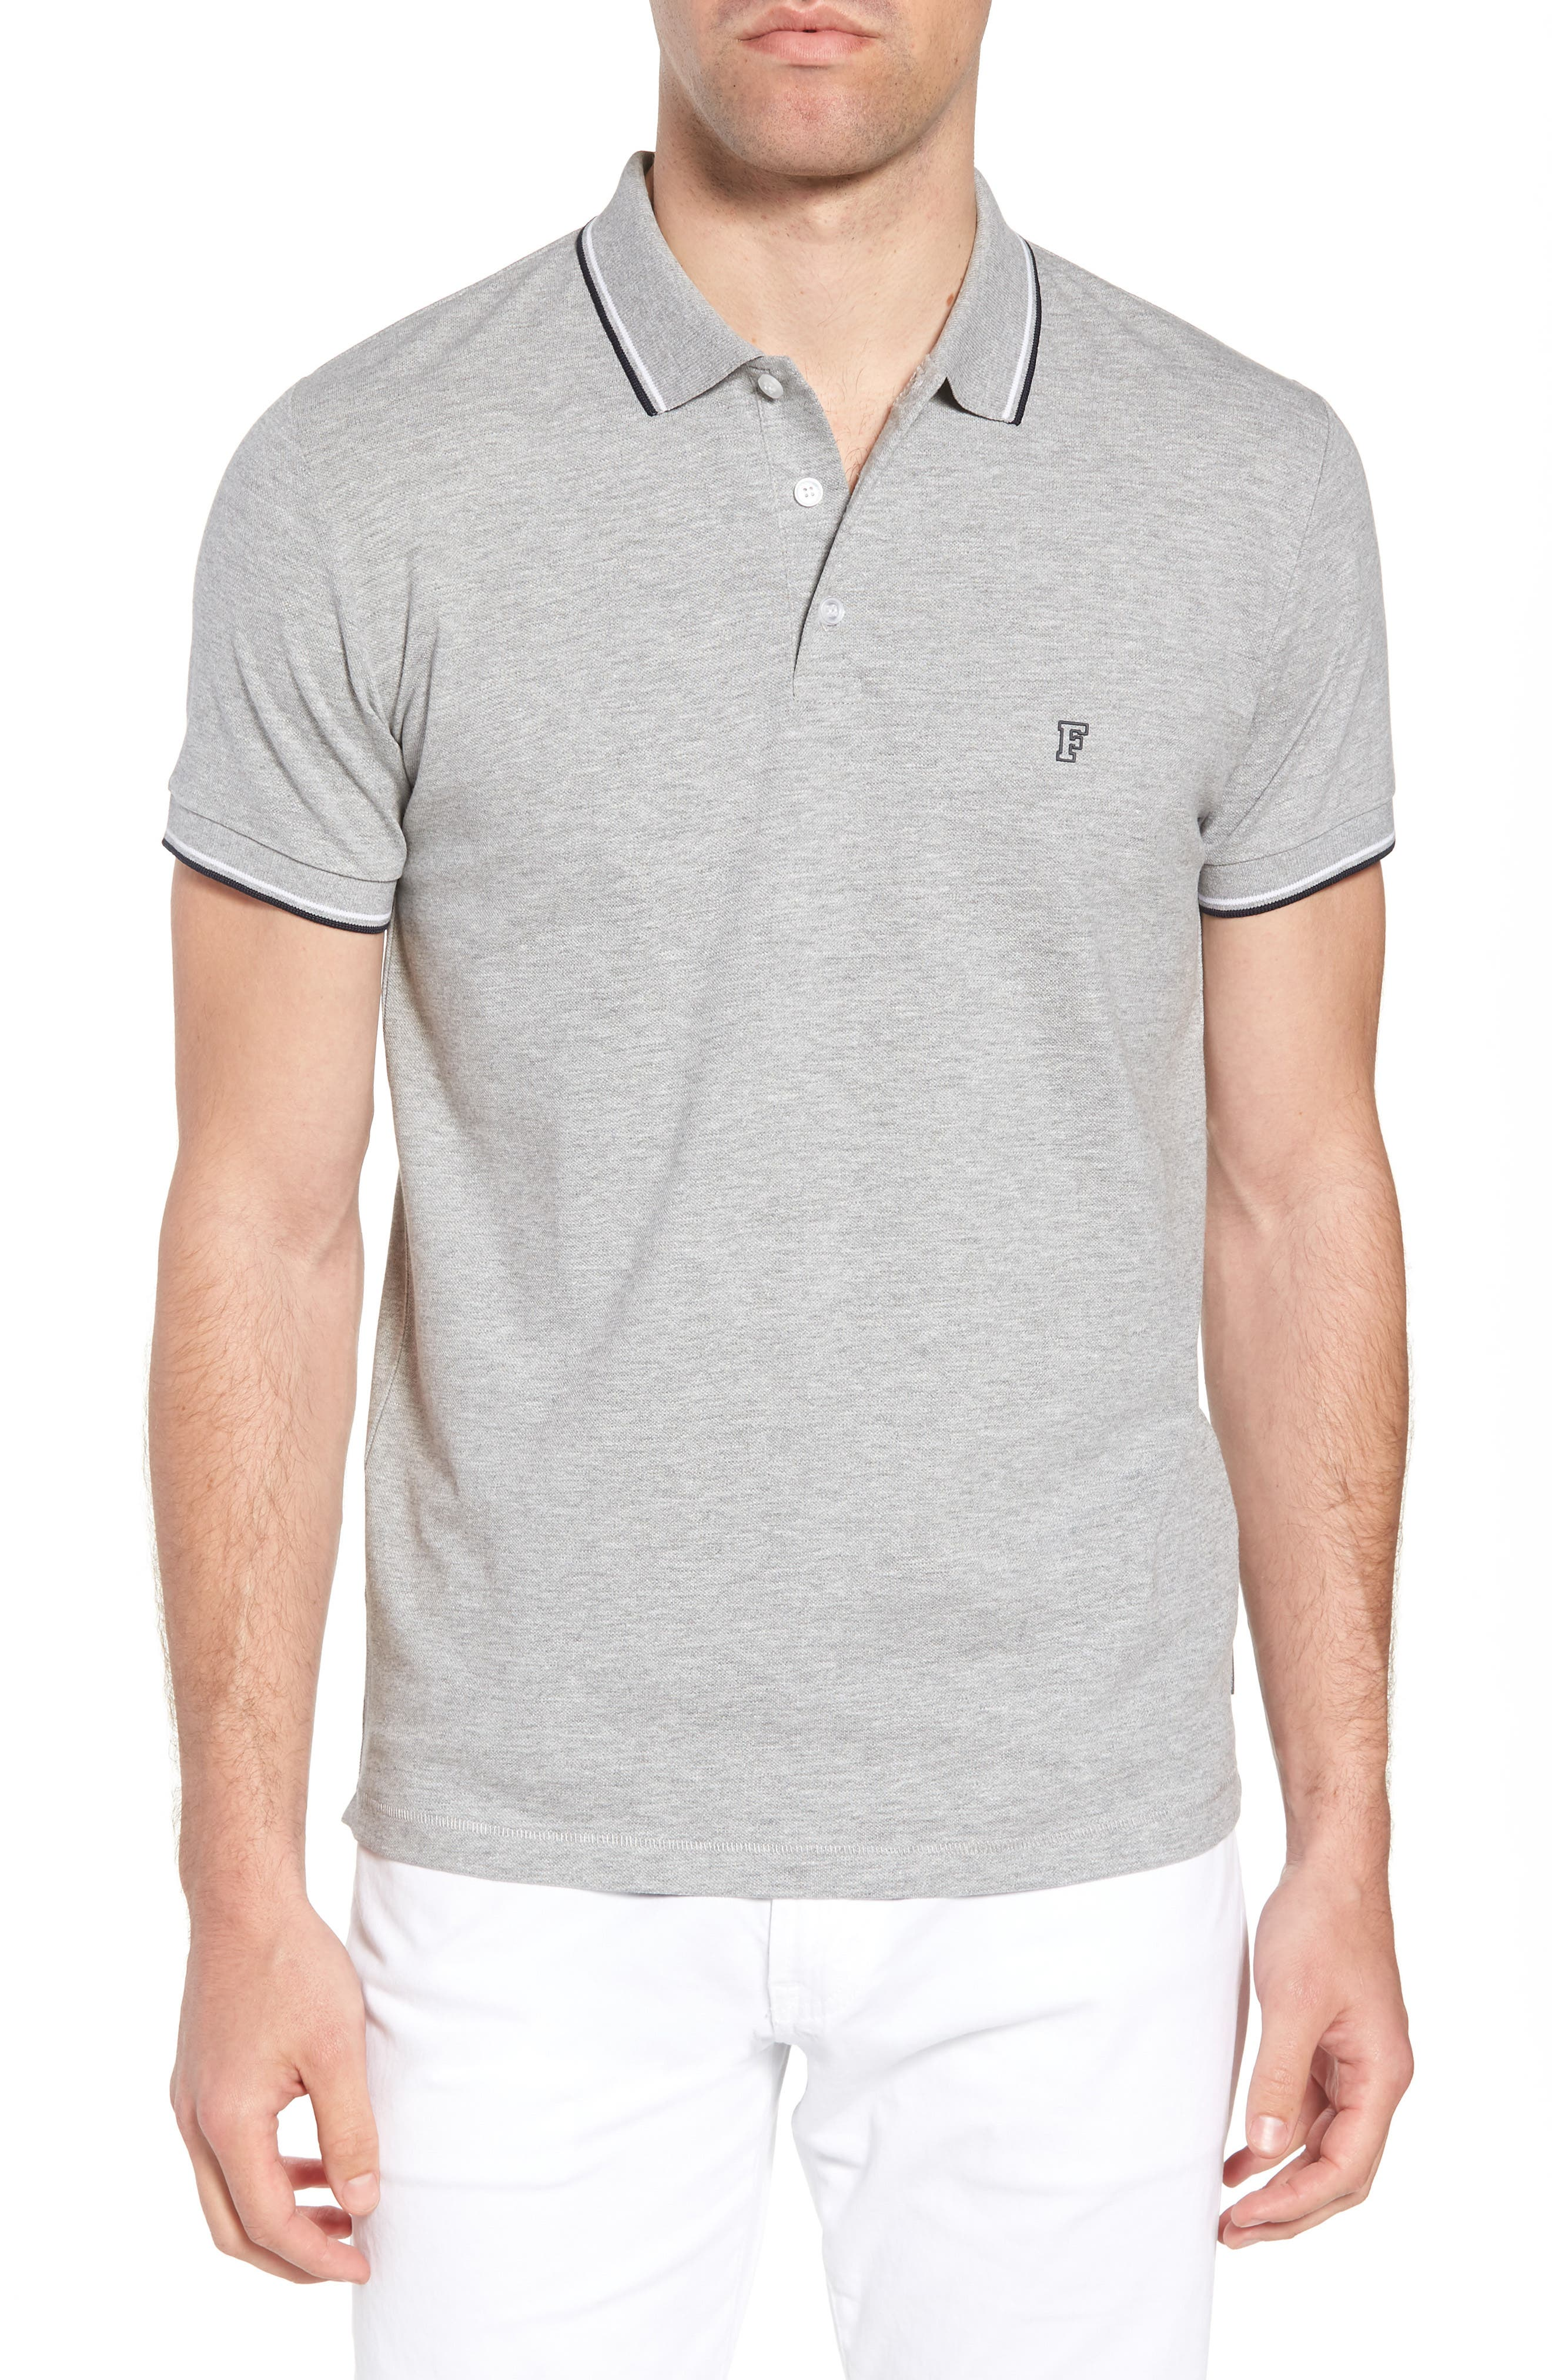 FRENCH CONNECTION, Cotton Polo Shirt, Main thumbnail 1, color, GREY MELANGE